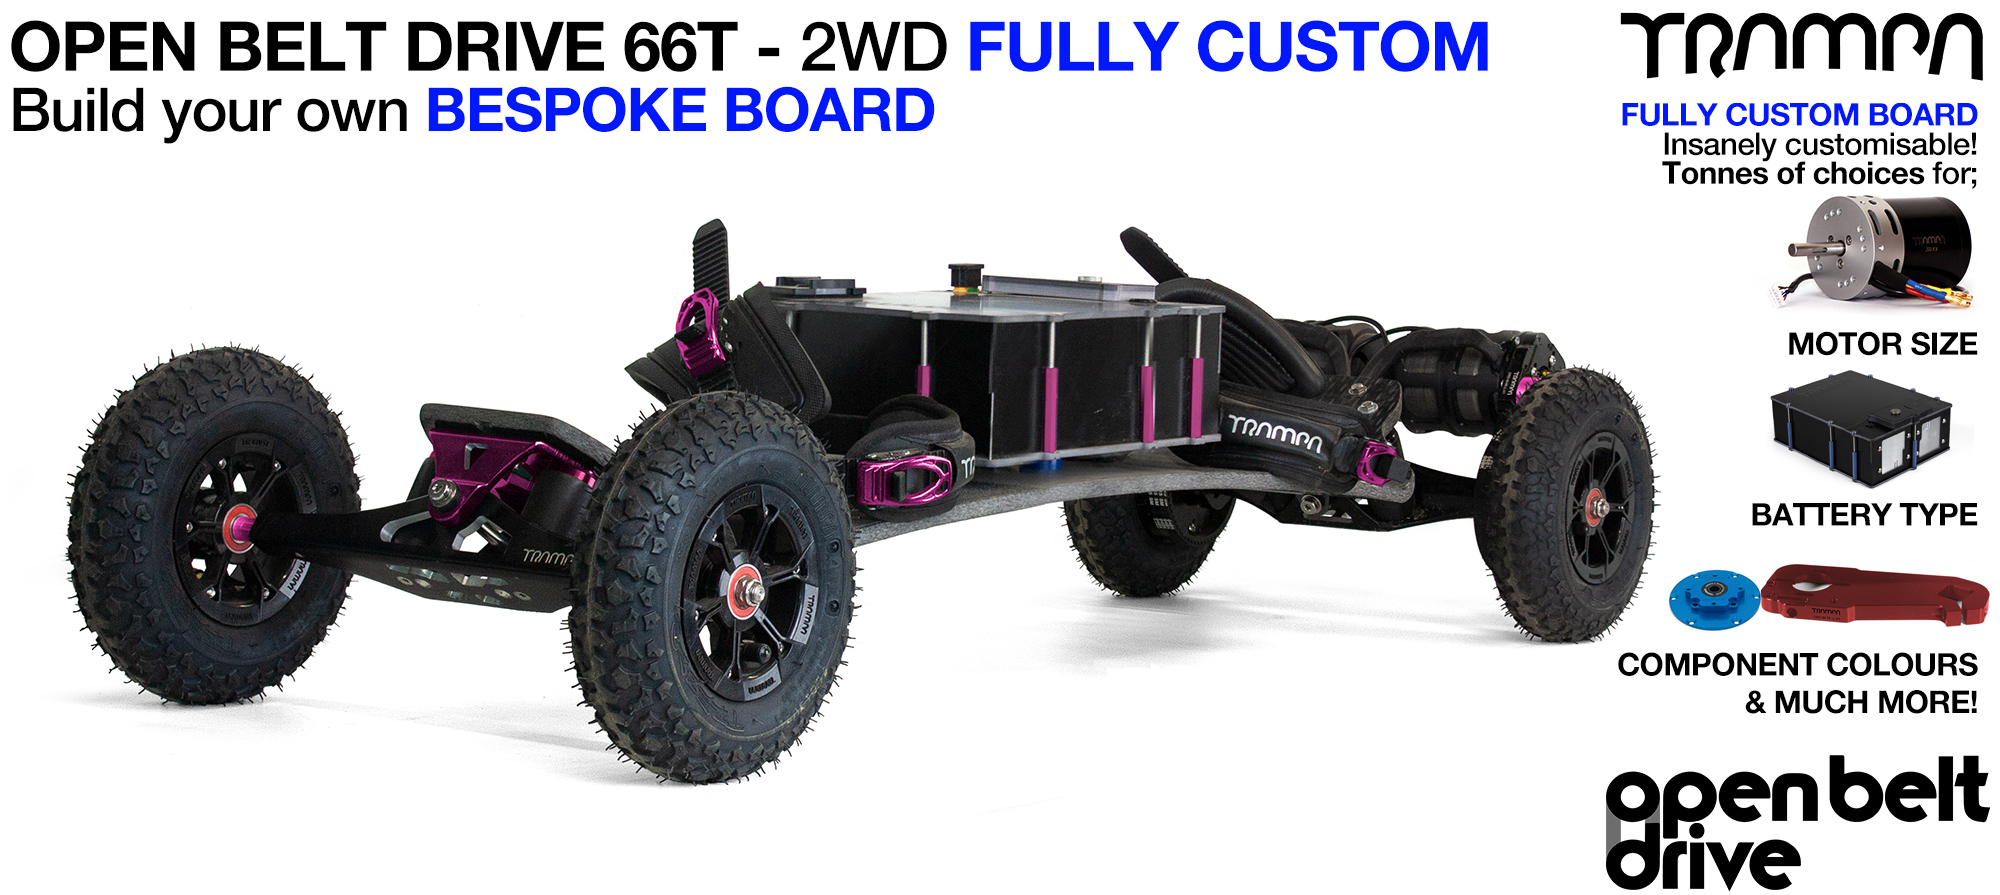 OPEN BELT DRIVE Electric Mountainboard with MONSTER Box with 8 or 9 inch Wheels & Twin Motor CUSTOM build